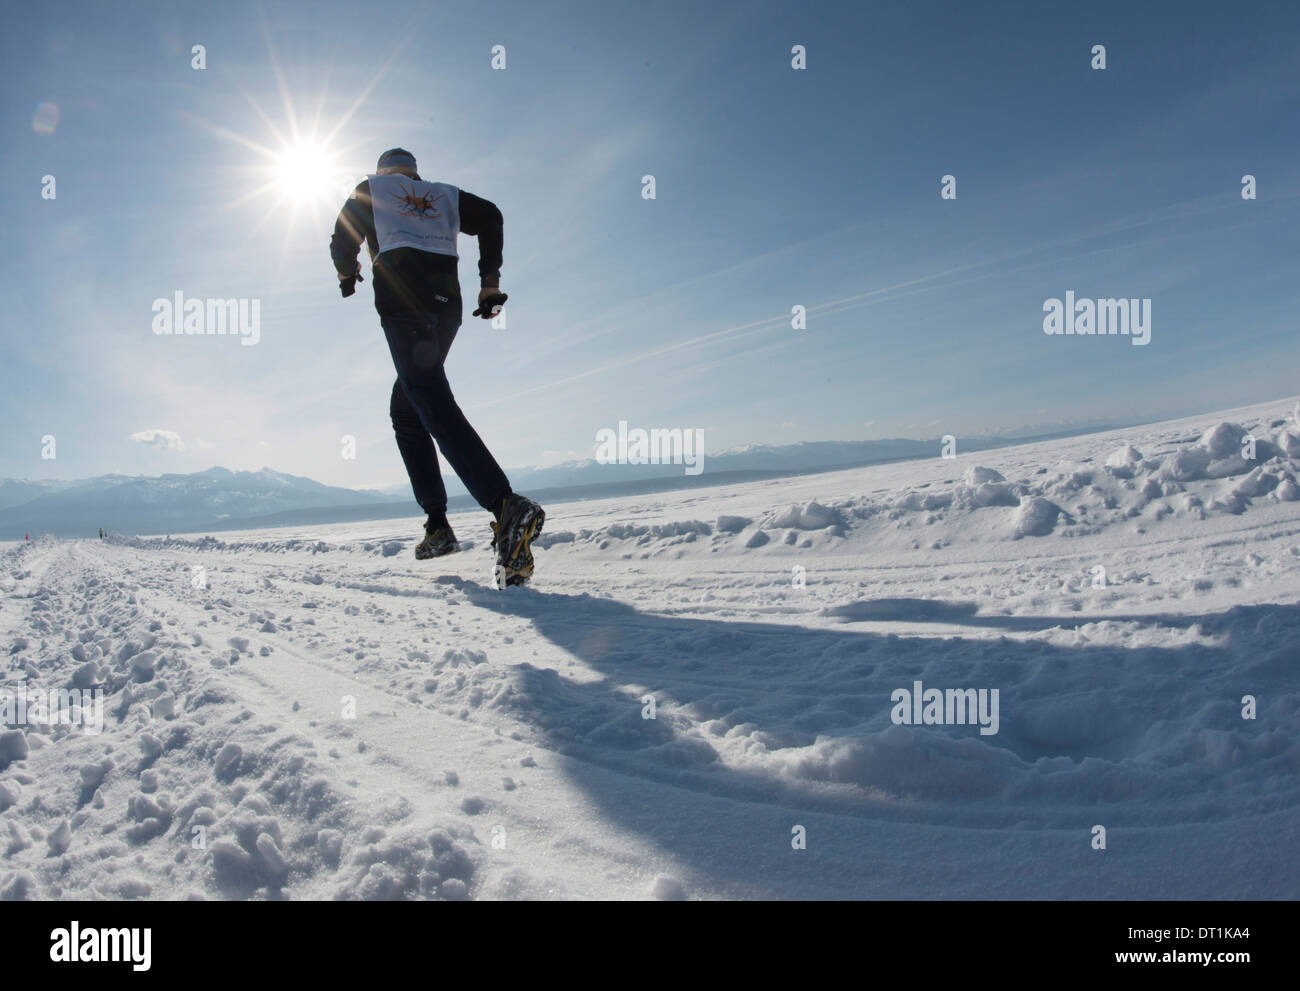 The 9th Lake Baikal Ice marathon, Lake Baikal, Irkutsk Oblast, Siberia, Russian Federation, Eurasia - Stock Image